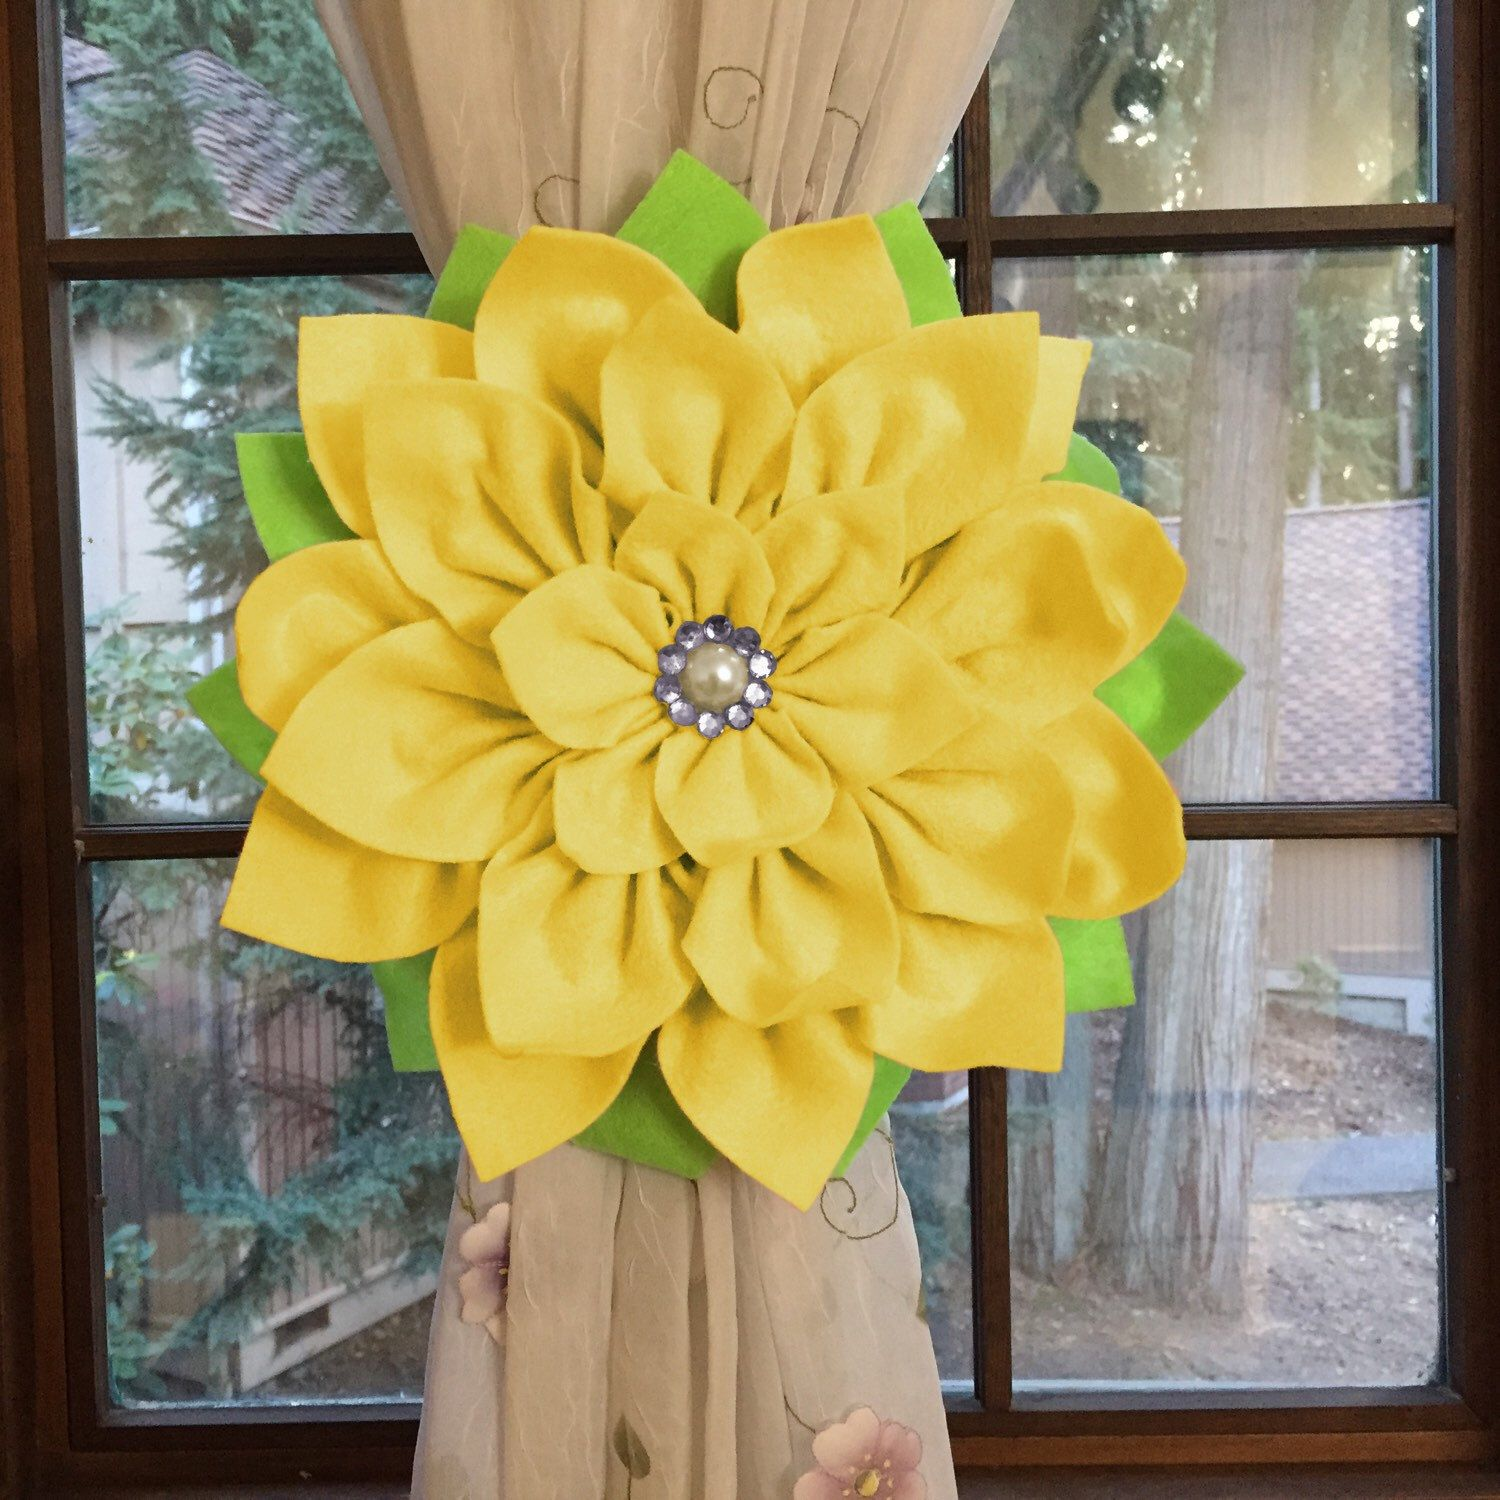 How About This Lovely Yellow Flower Curtain Holdback Totally New